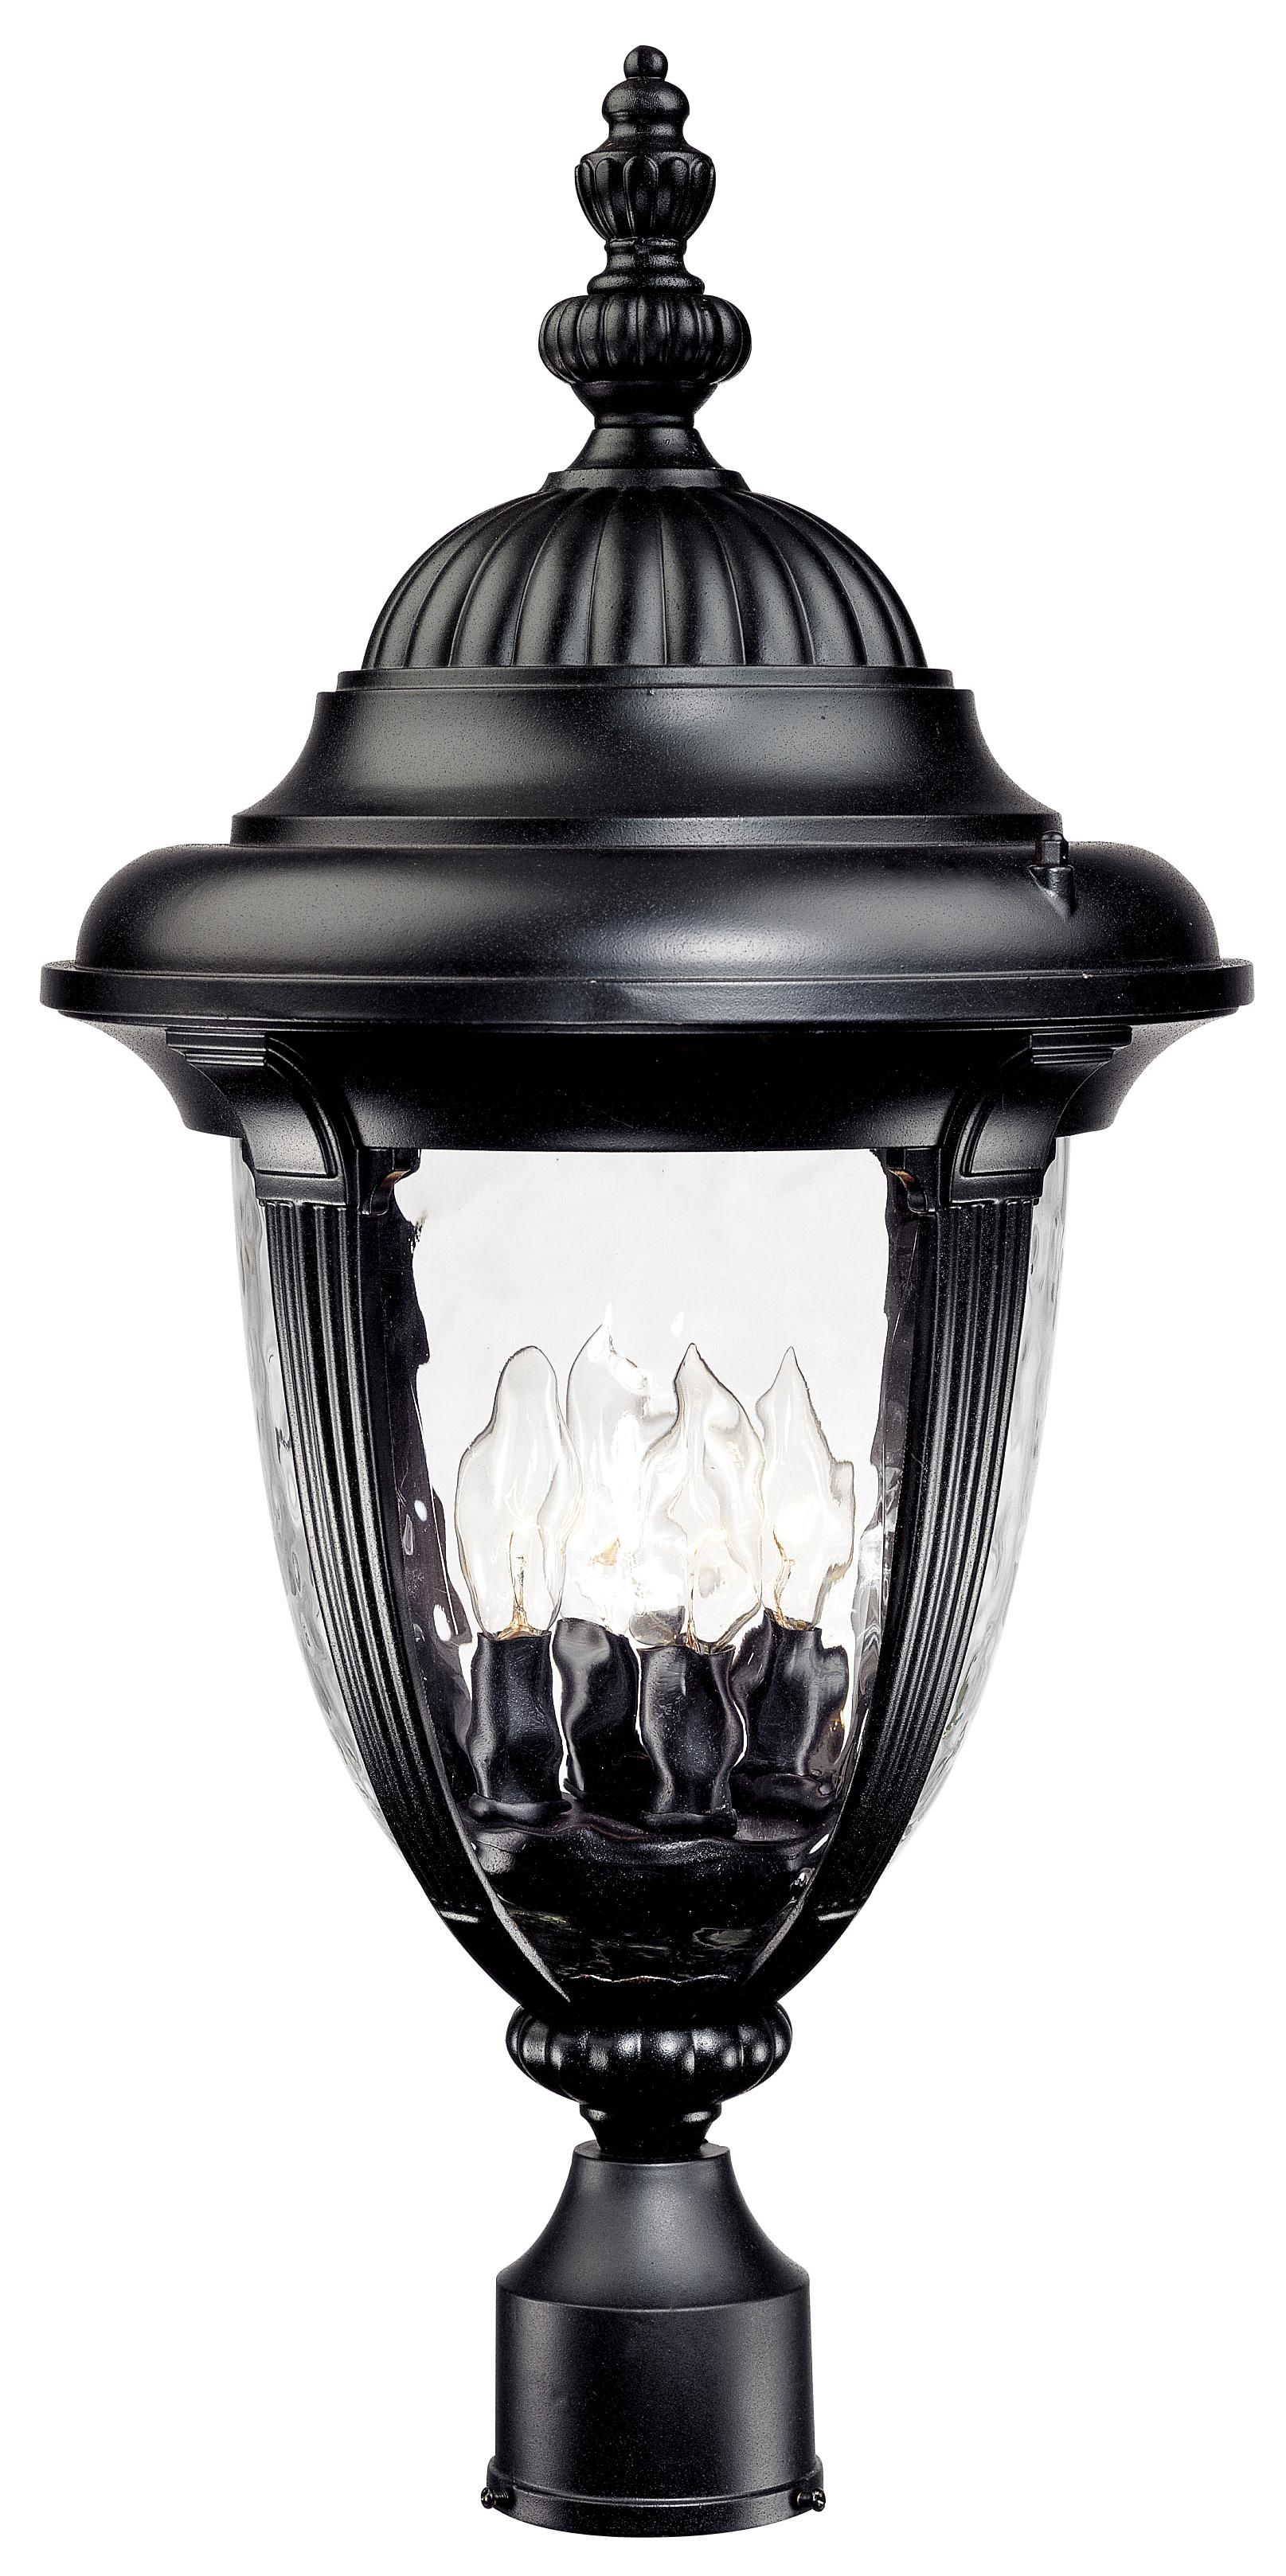 Bellagio Collection 24 1 2 High Black Outdoor Post Light 49274 Lamps Plus Outdoor Post Lights Outdoor Post Post Lights